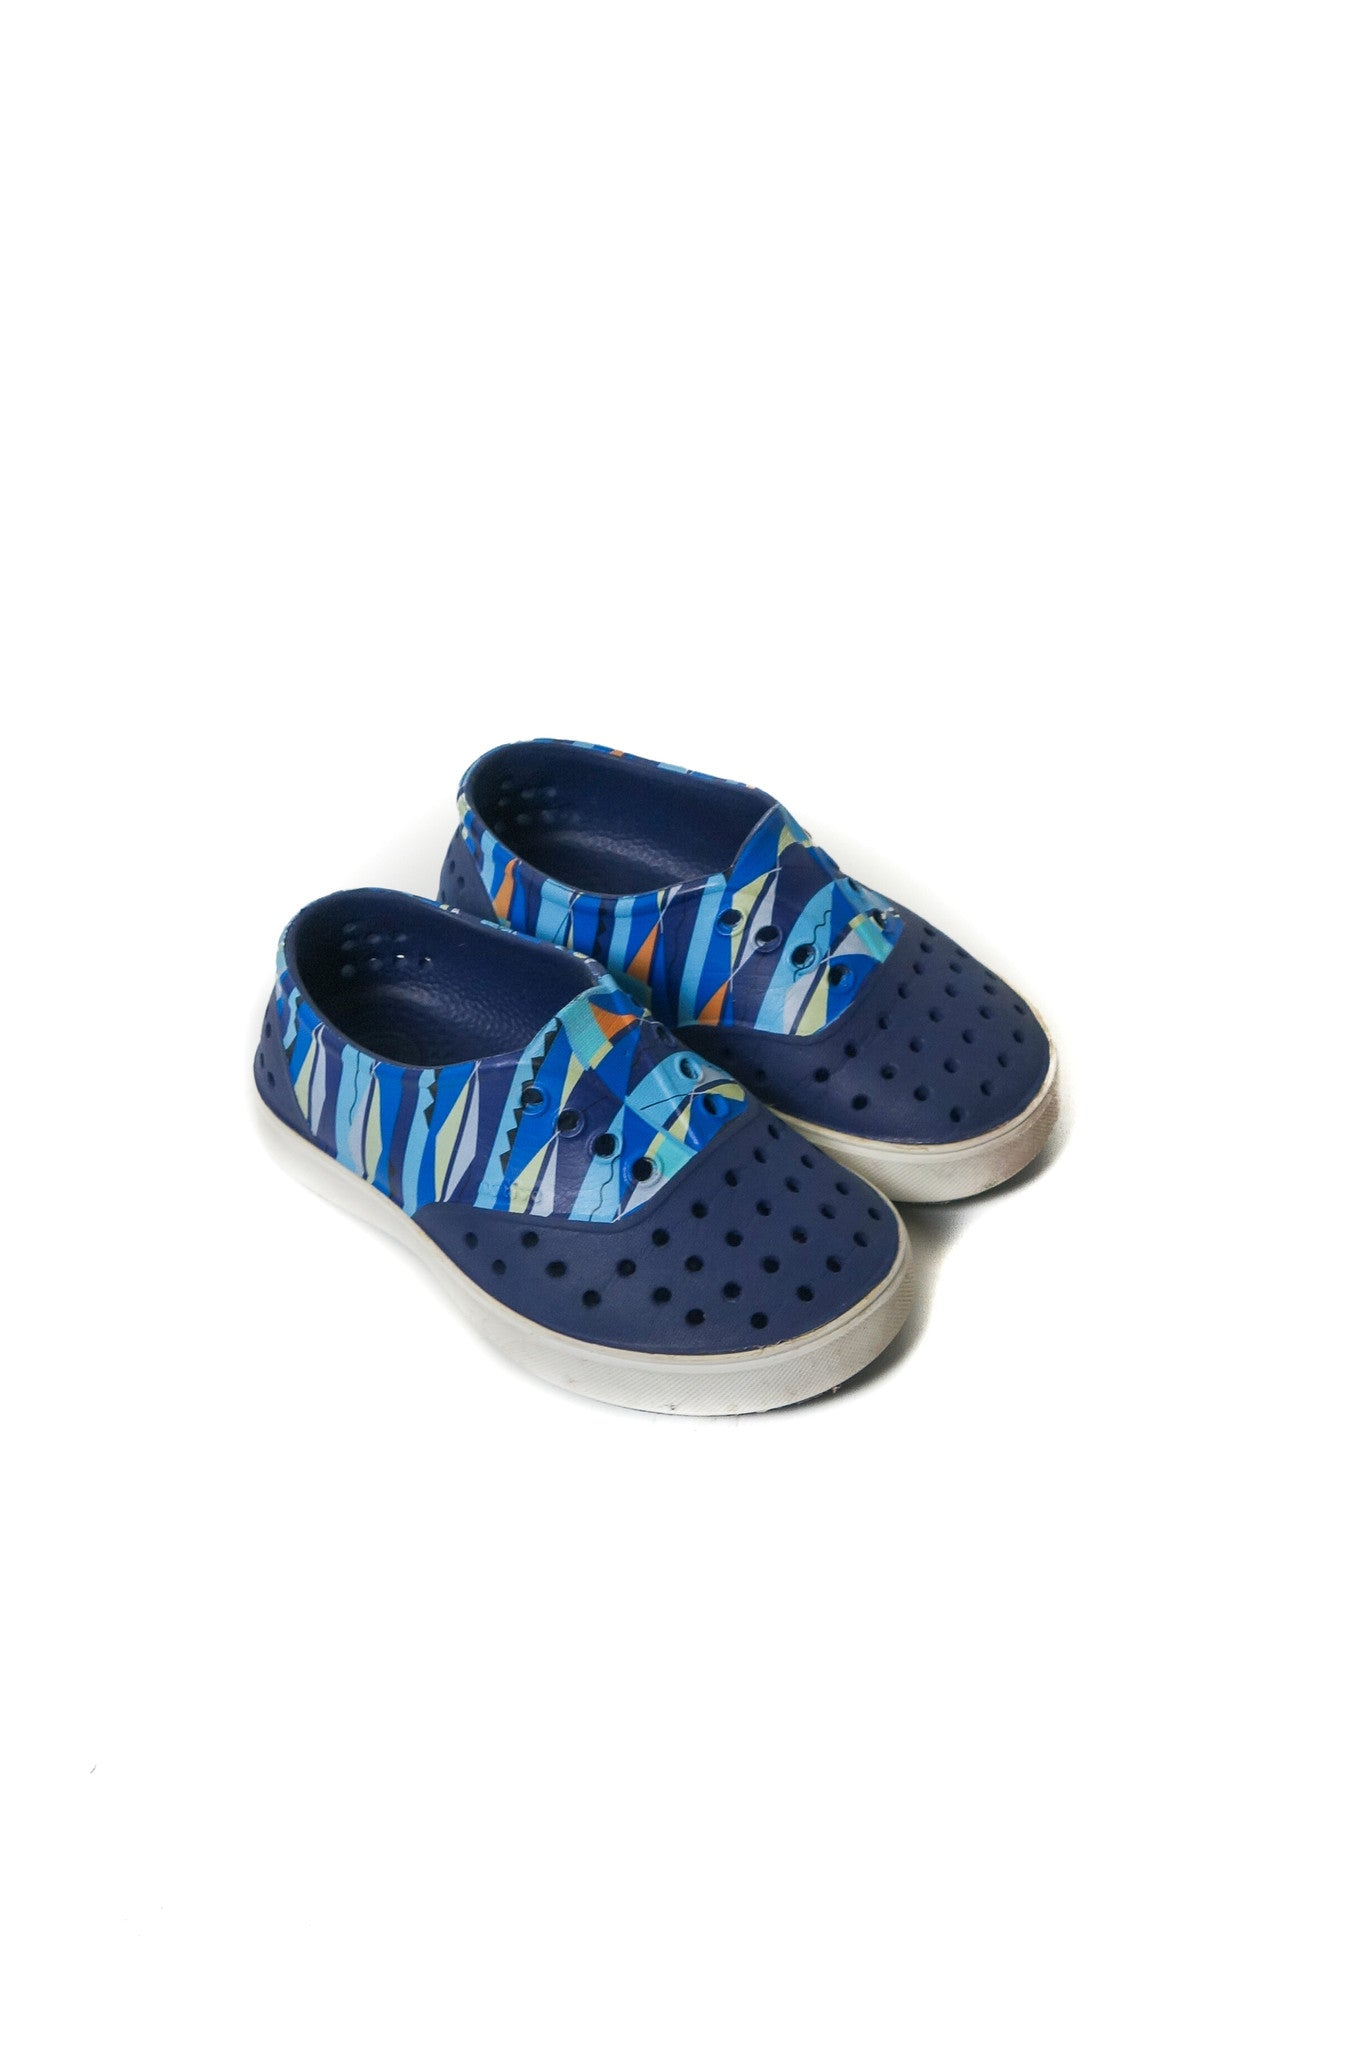 10002968 Native Shoes Kids~Shoes 3T (US 9) at Retykle